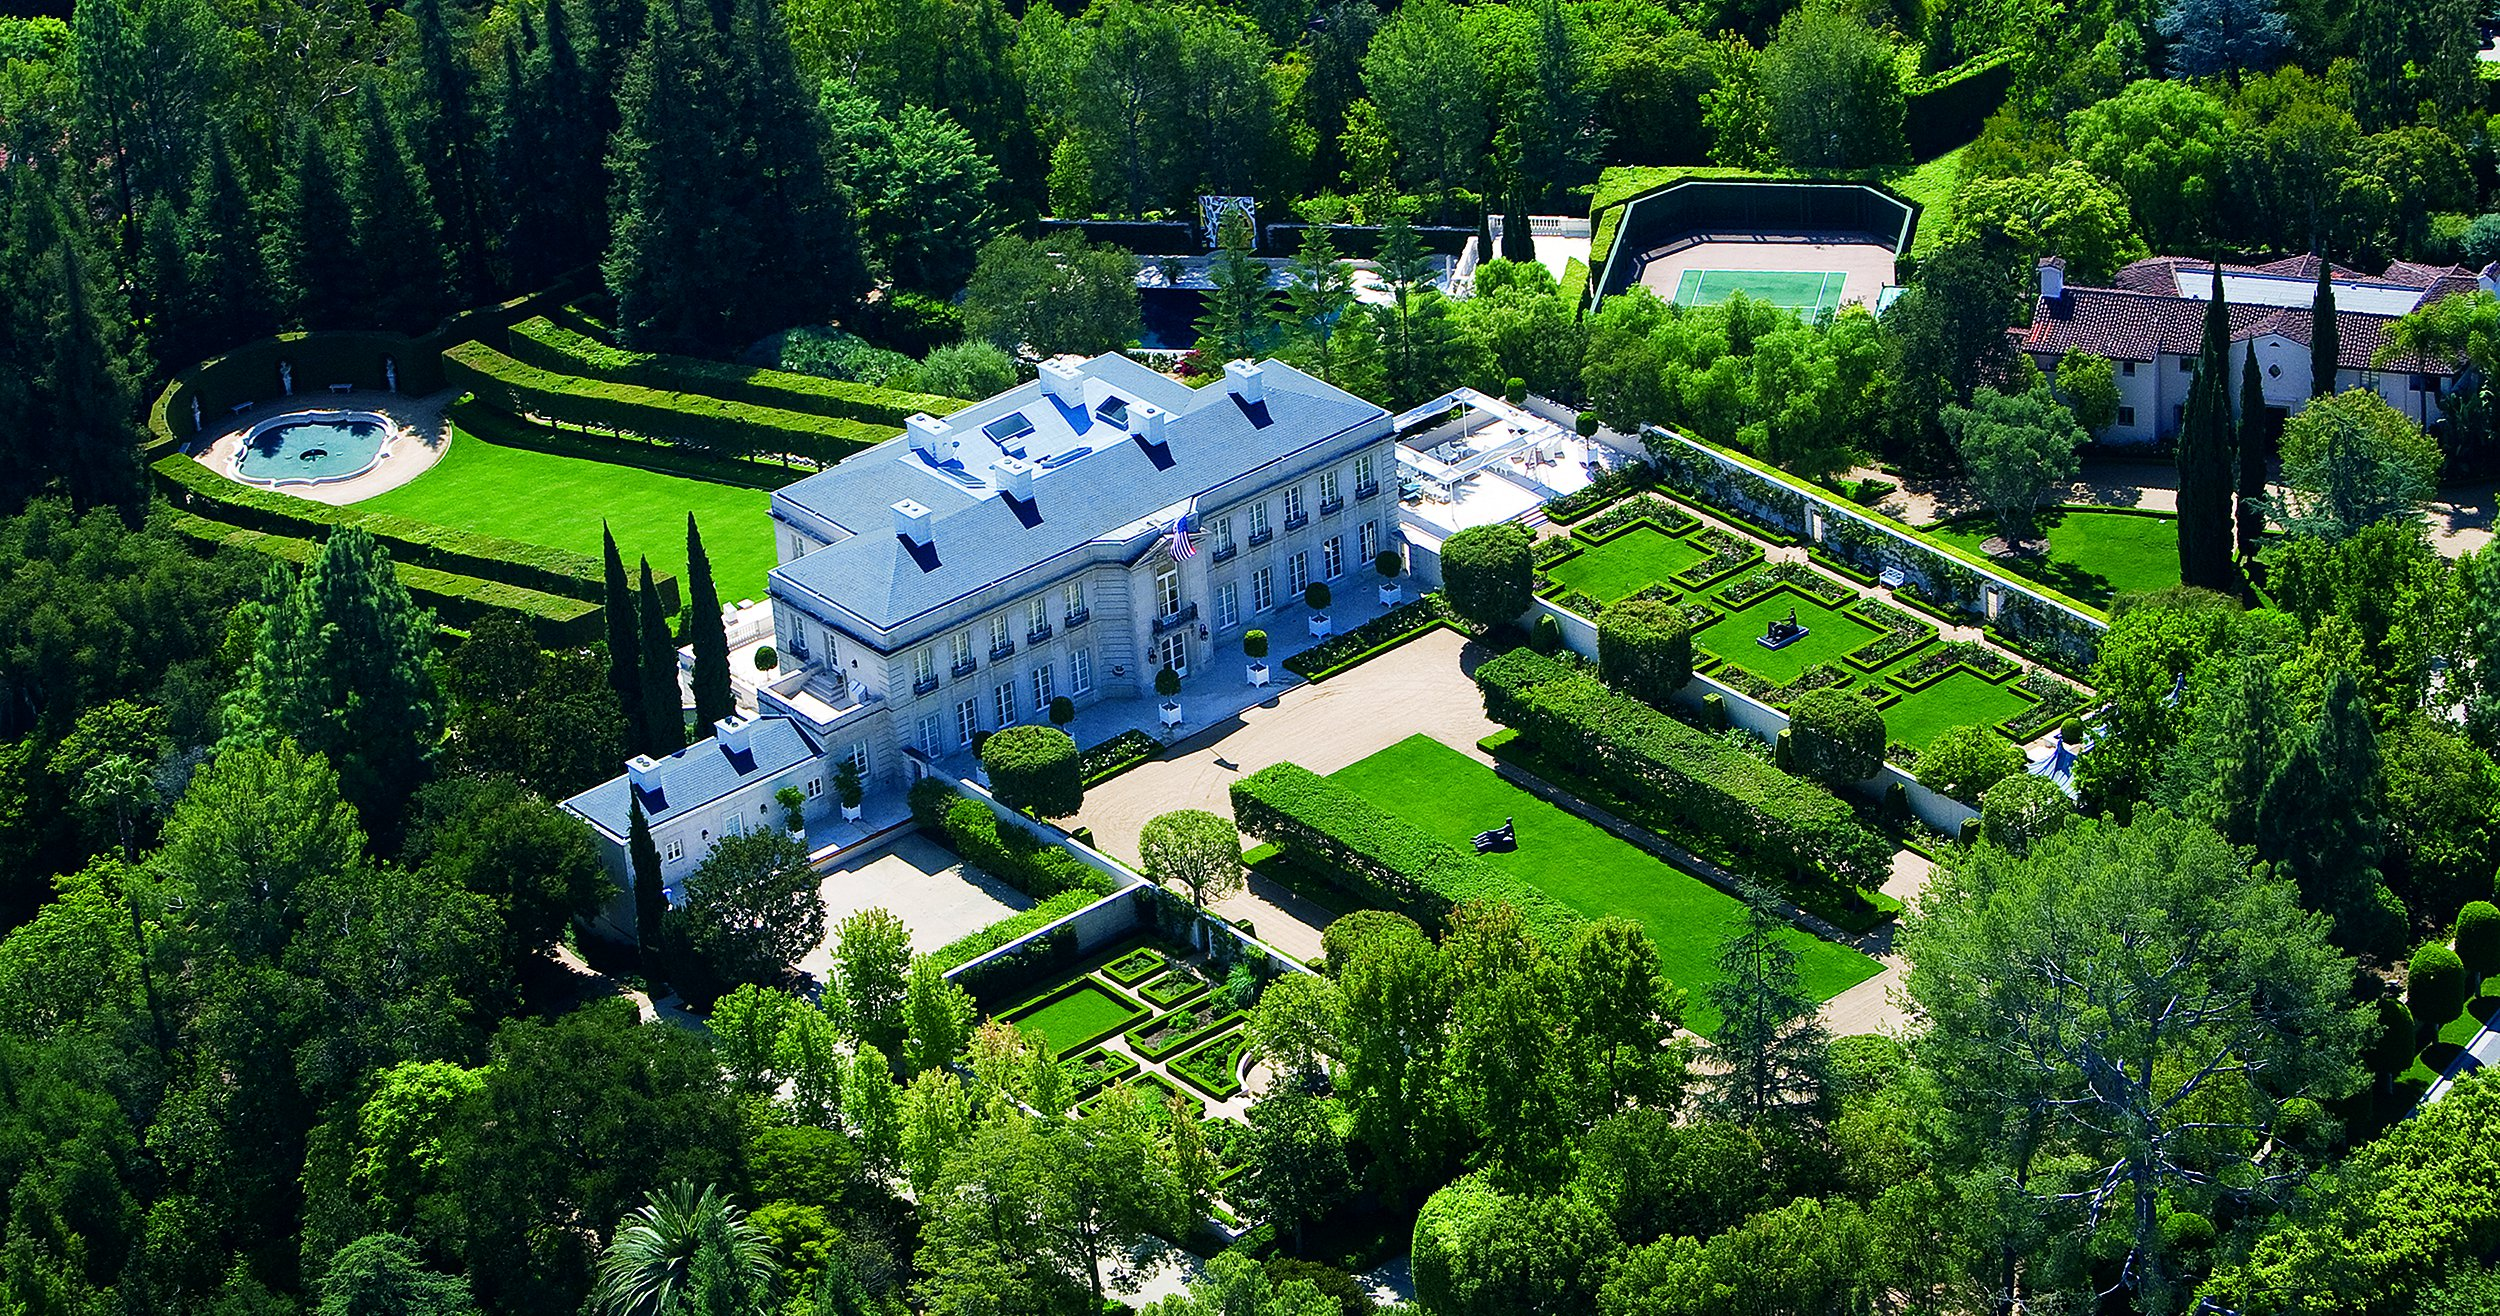 /data/MediaLibrary/articles/12040/bel-air-aerial-image2.jpg